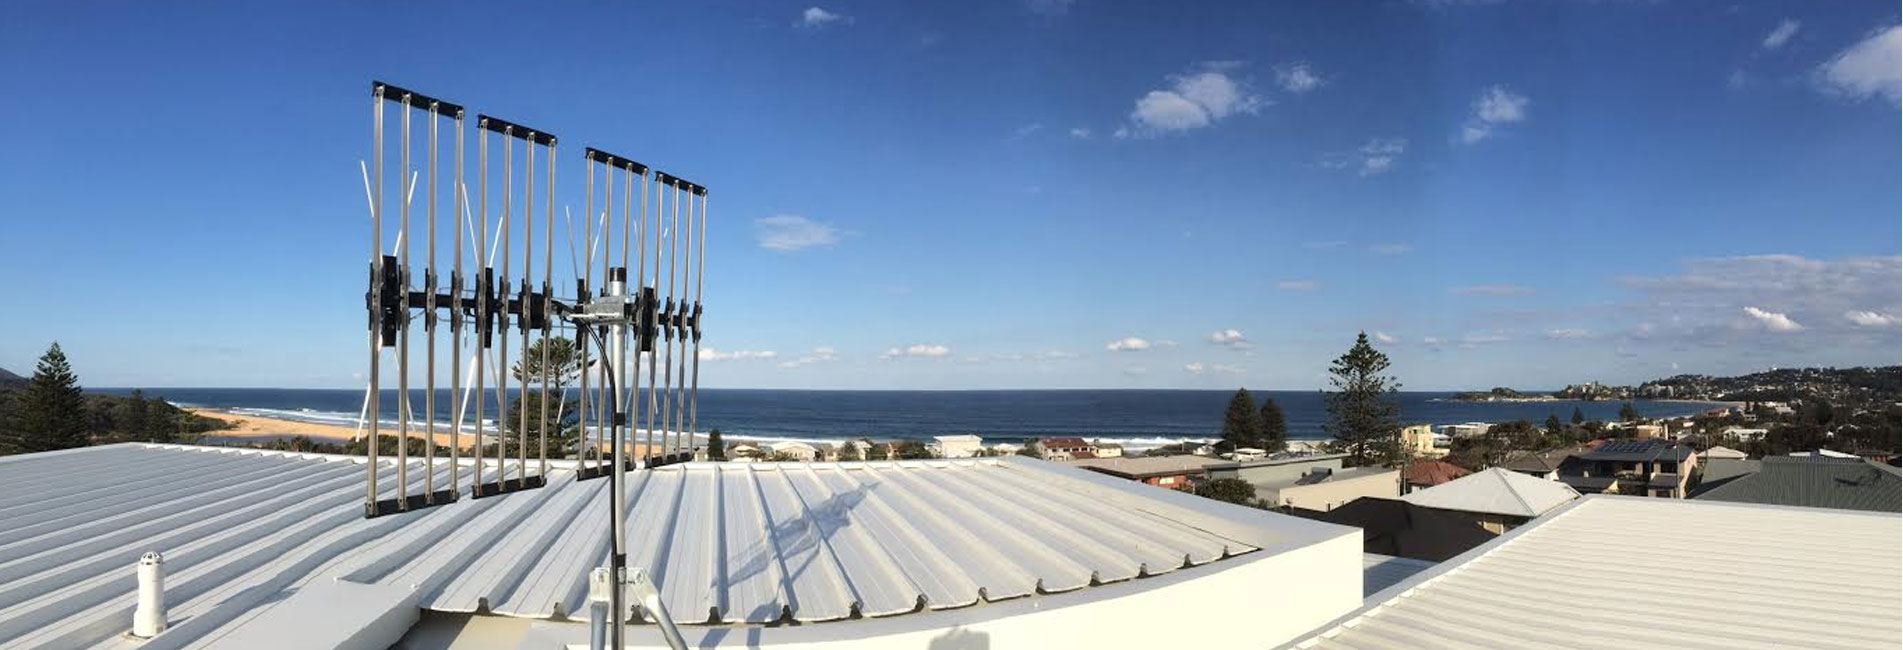 Digital Tv Antenna Installation Wyong, Home Theatre Installation Umina, Data & Communications Erina